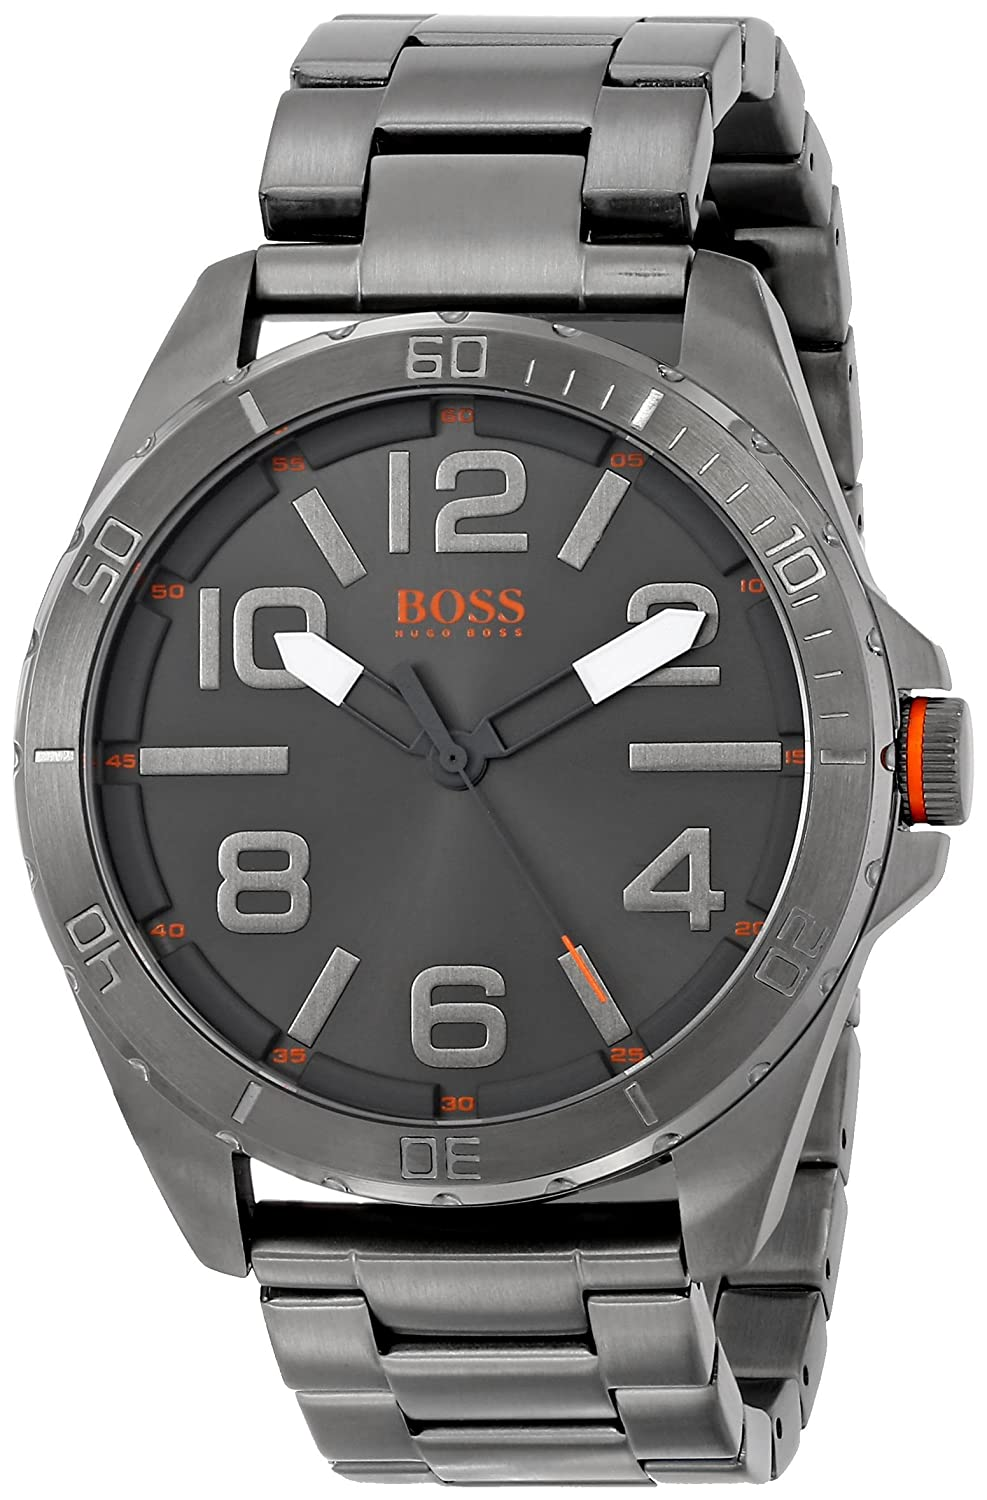 BOSS Orange Herren 1512999 Berlin Analog Display Quartz Grey Armbanduhr